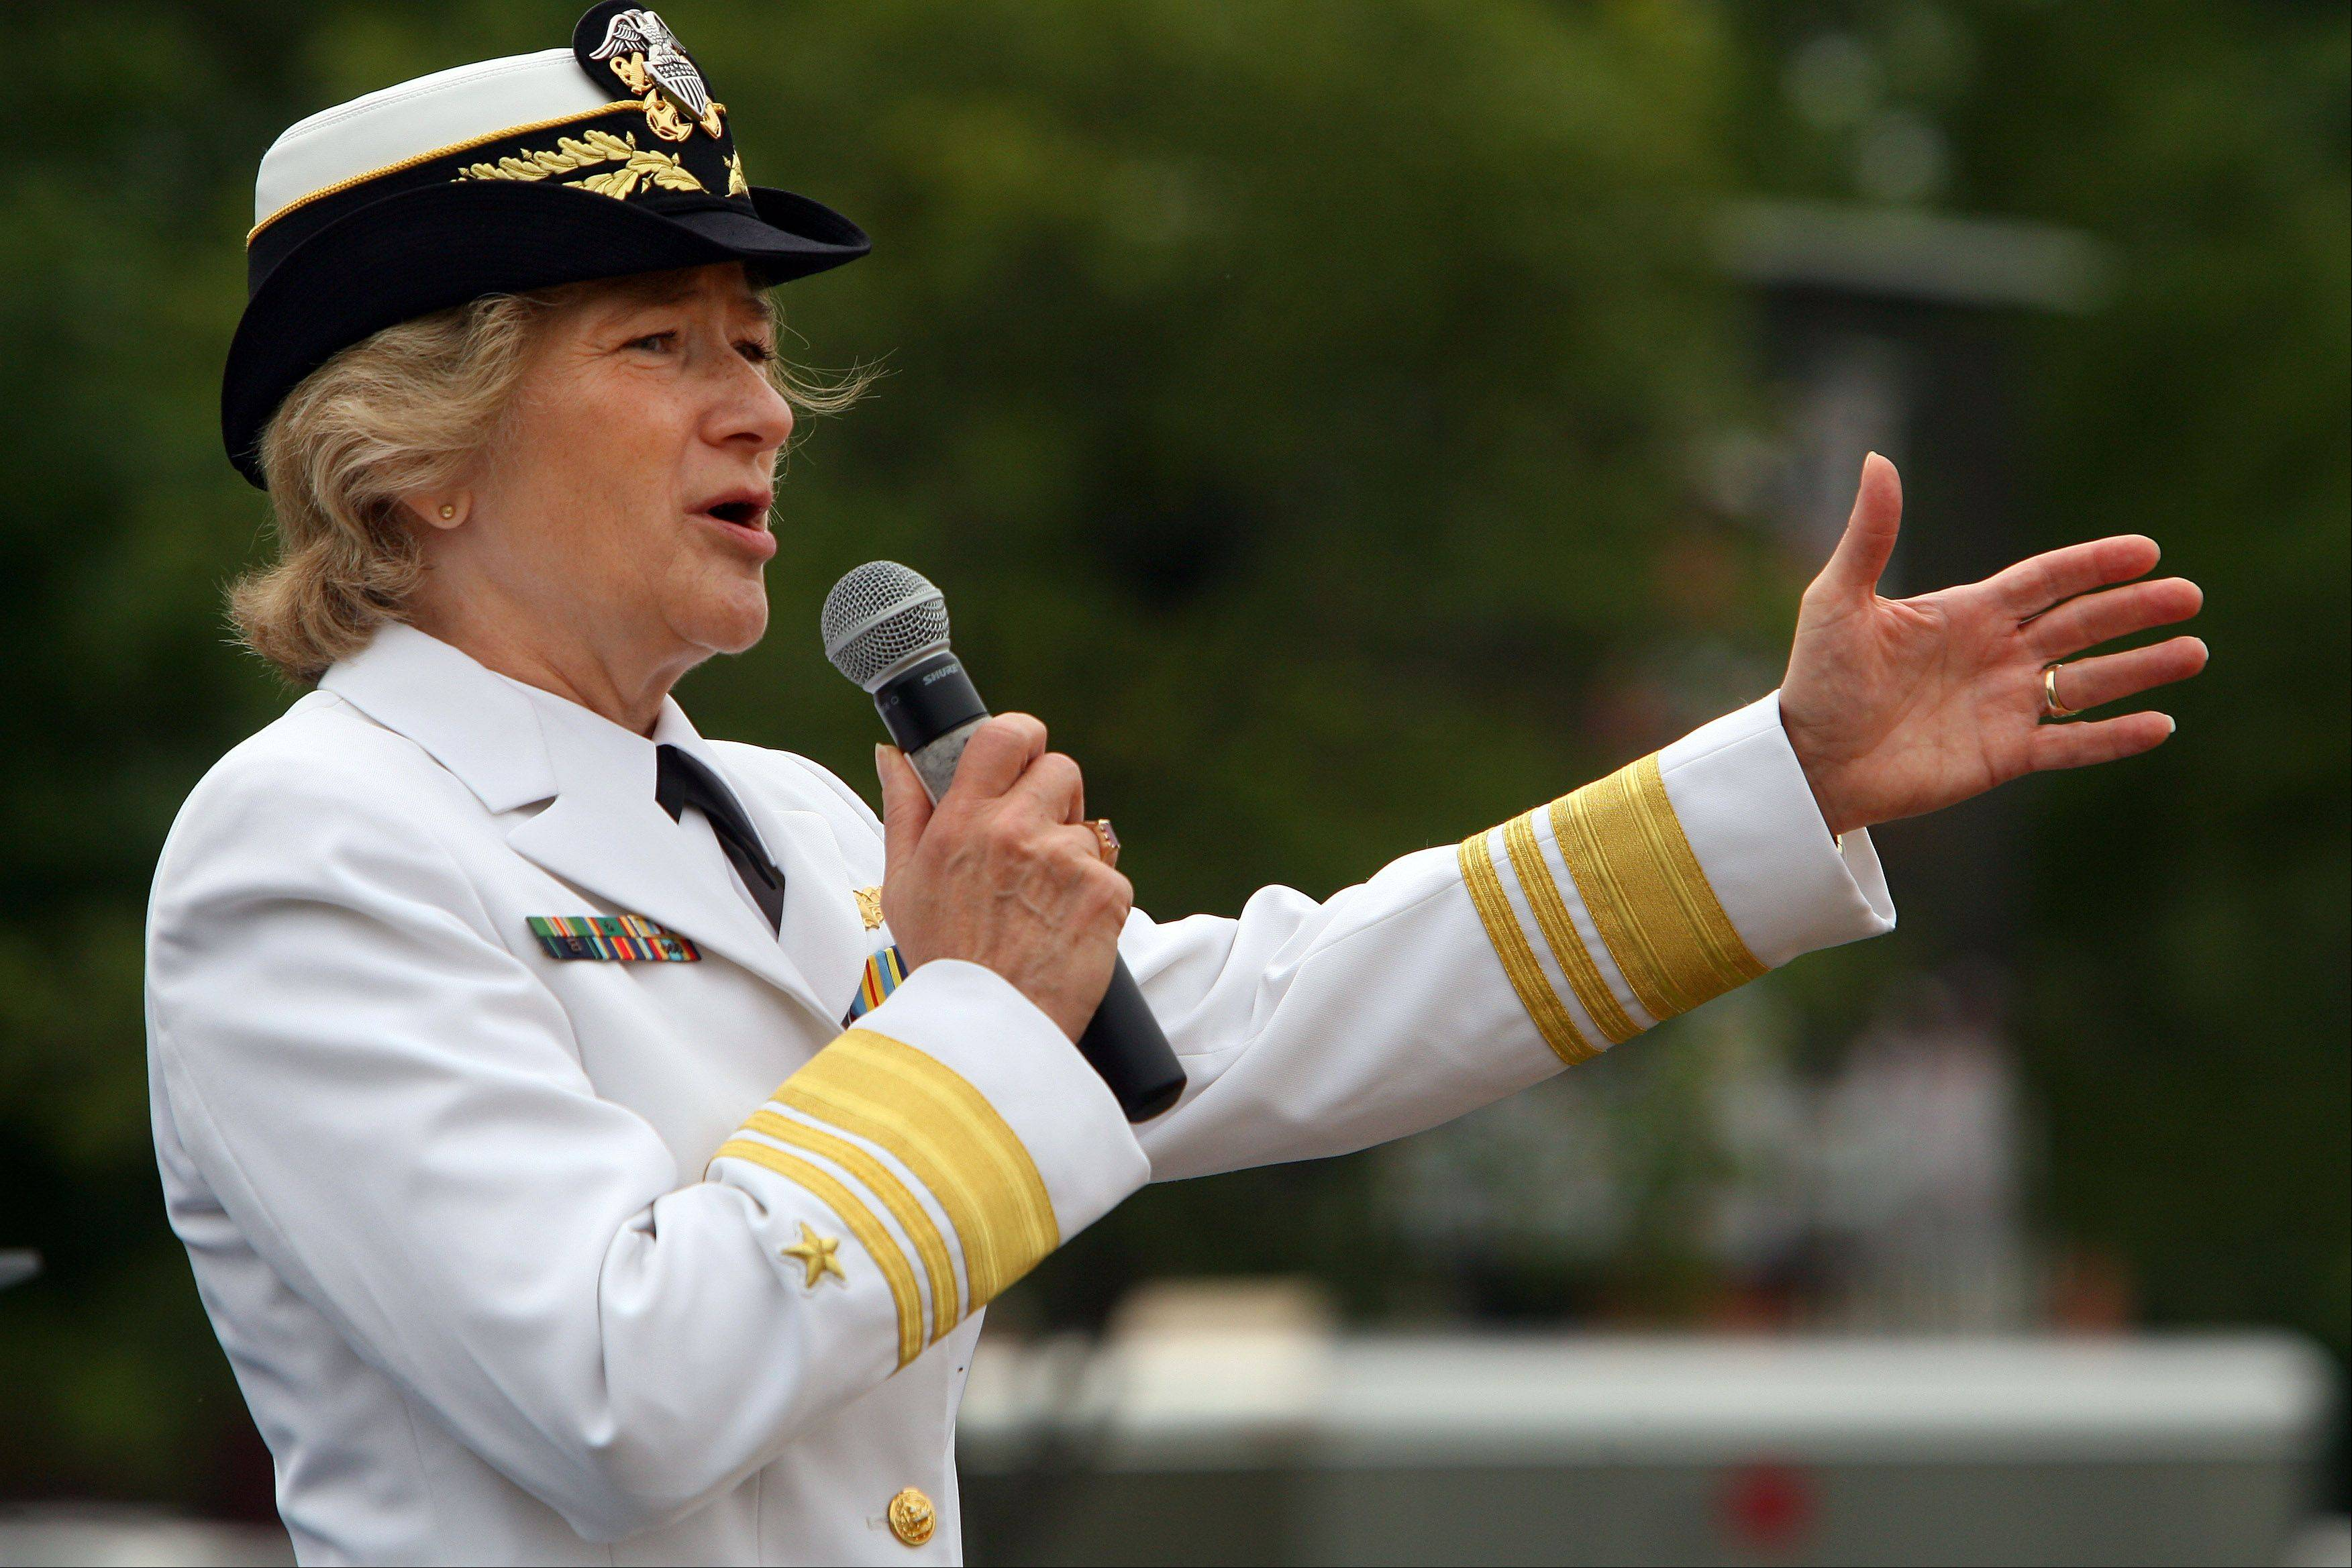 Vice Admiral Ann E. Rondeau gives a speech as Great Lakes Naval Station held a rededication ceremony while graduating about 1,000 recruits on its 100th anniversary.